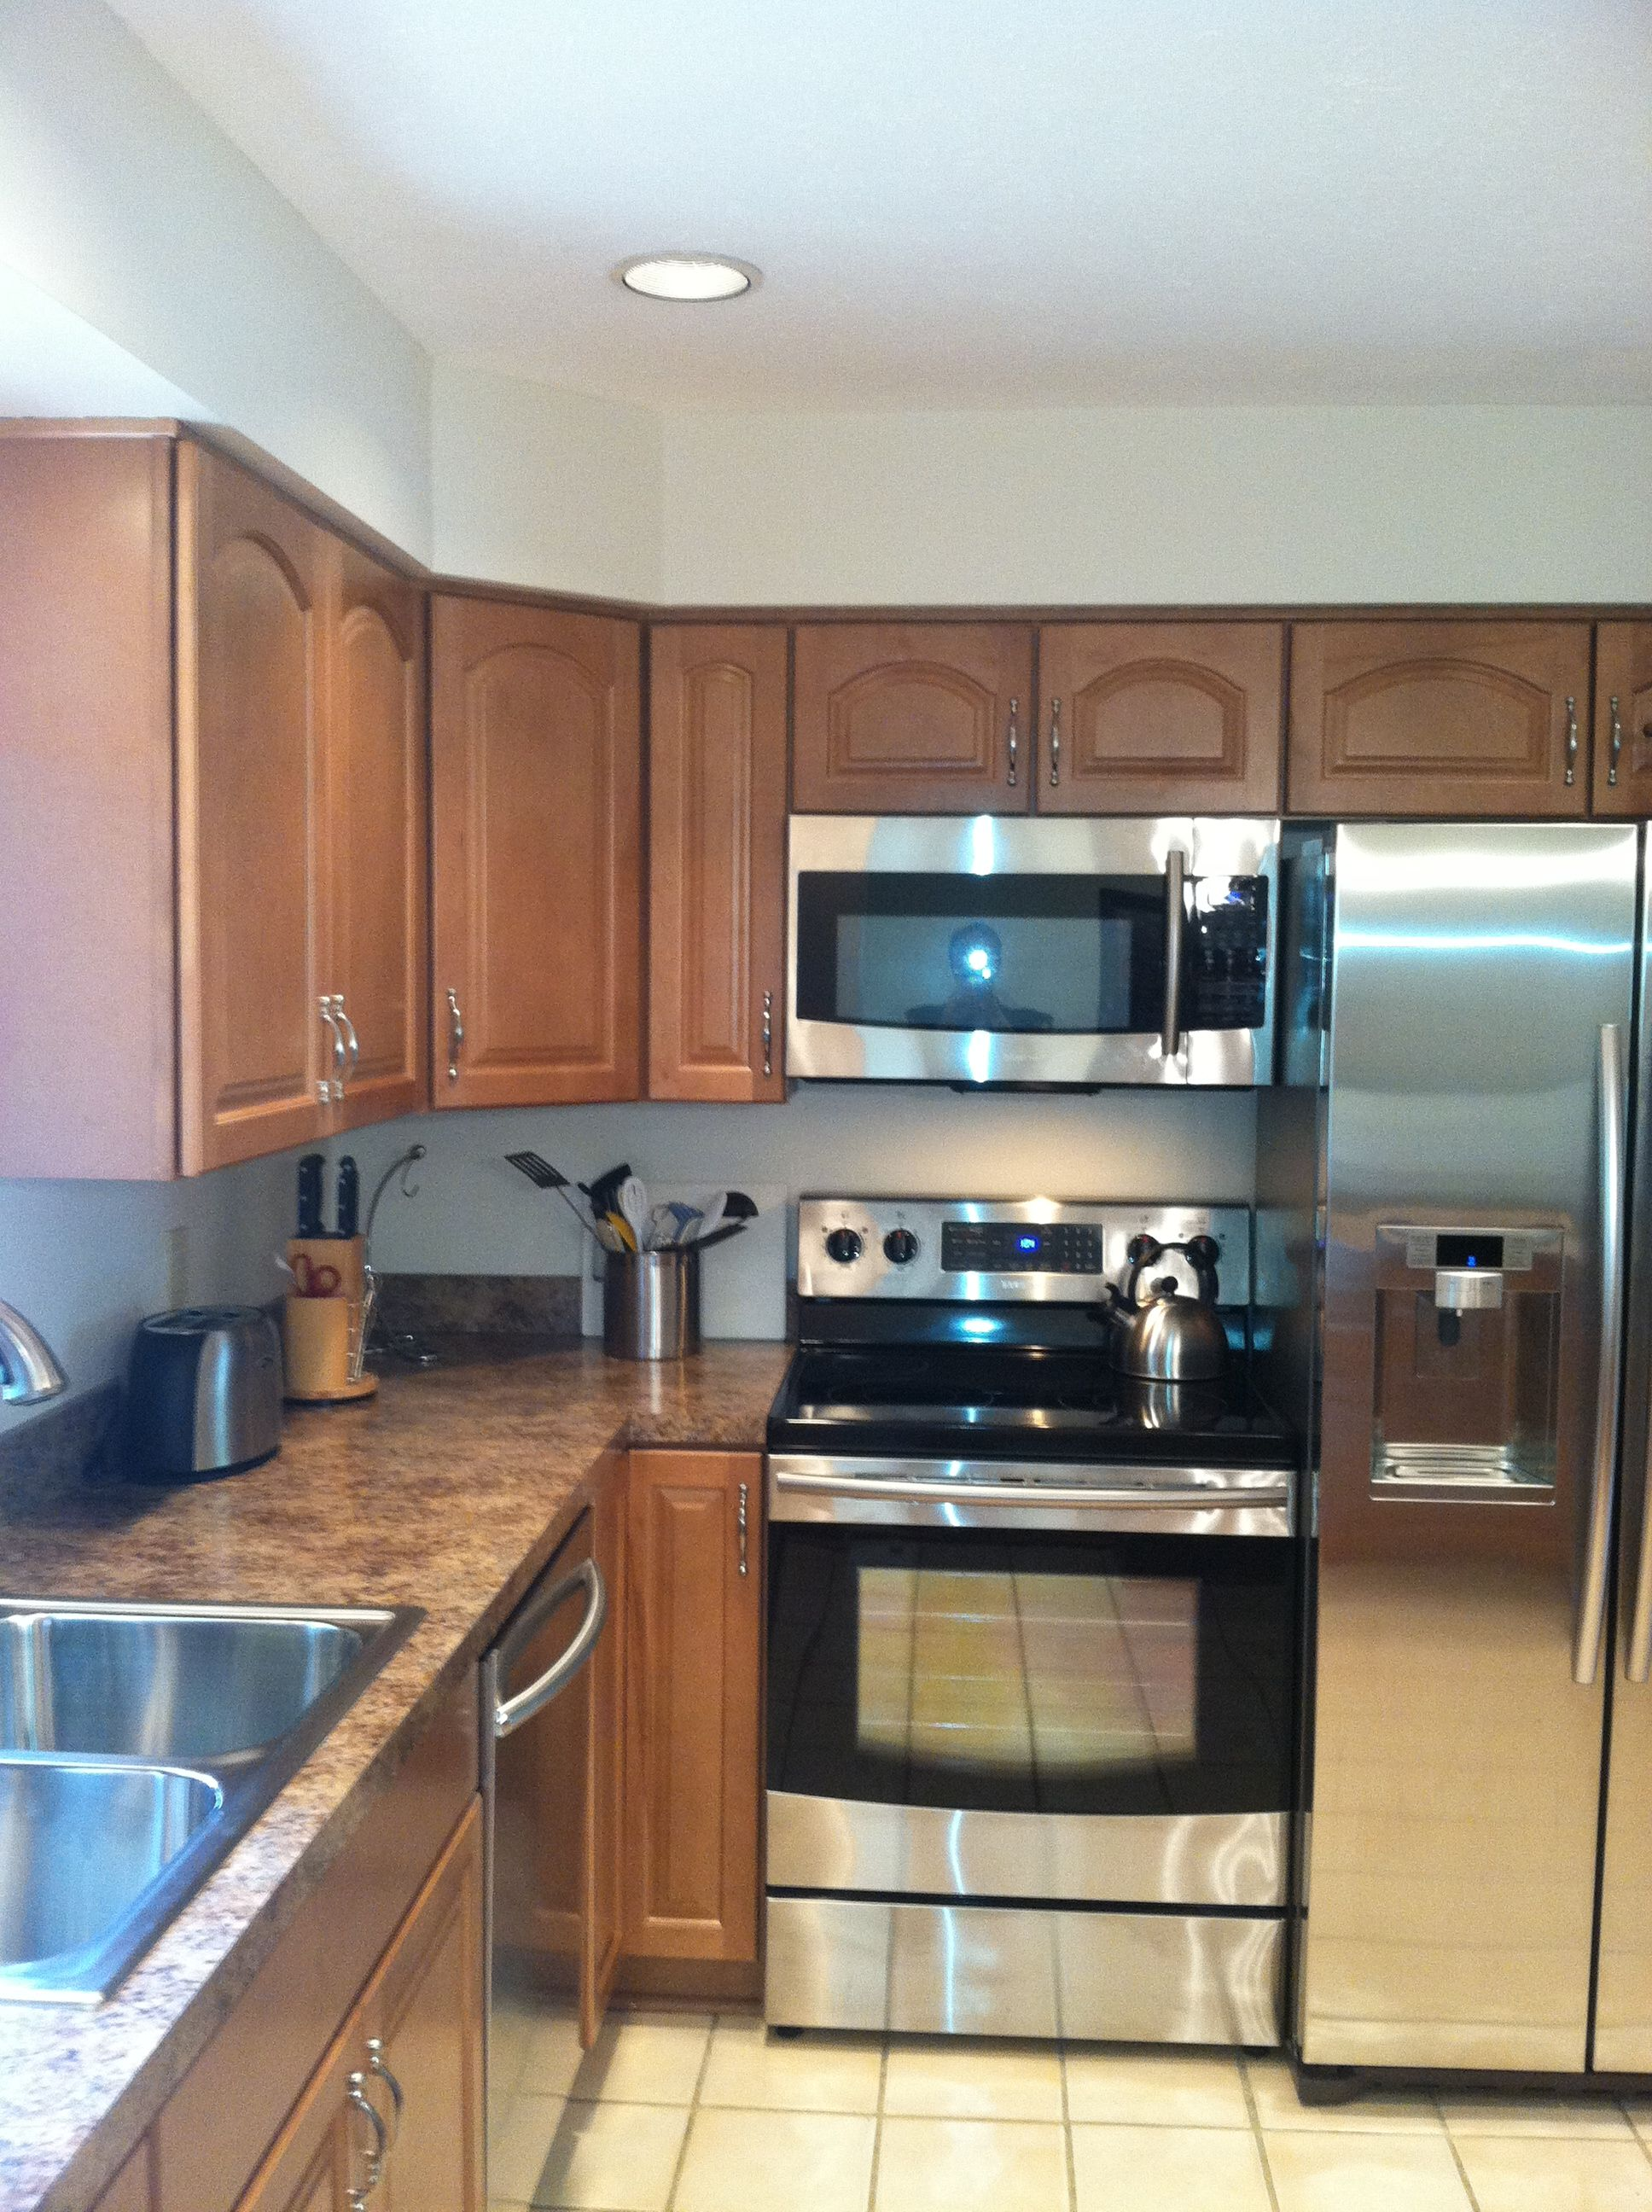 Countertops Definition Stainless Steel And Black Appliances With Waypoint Maple